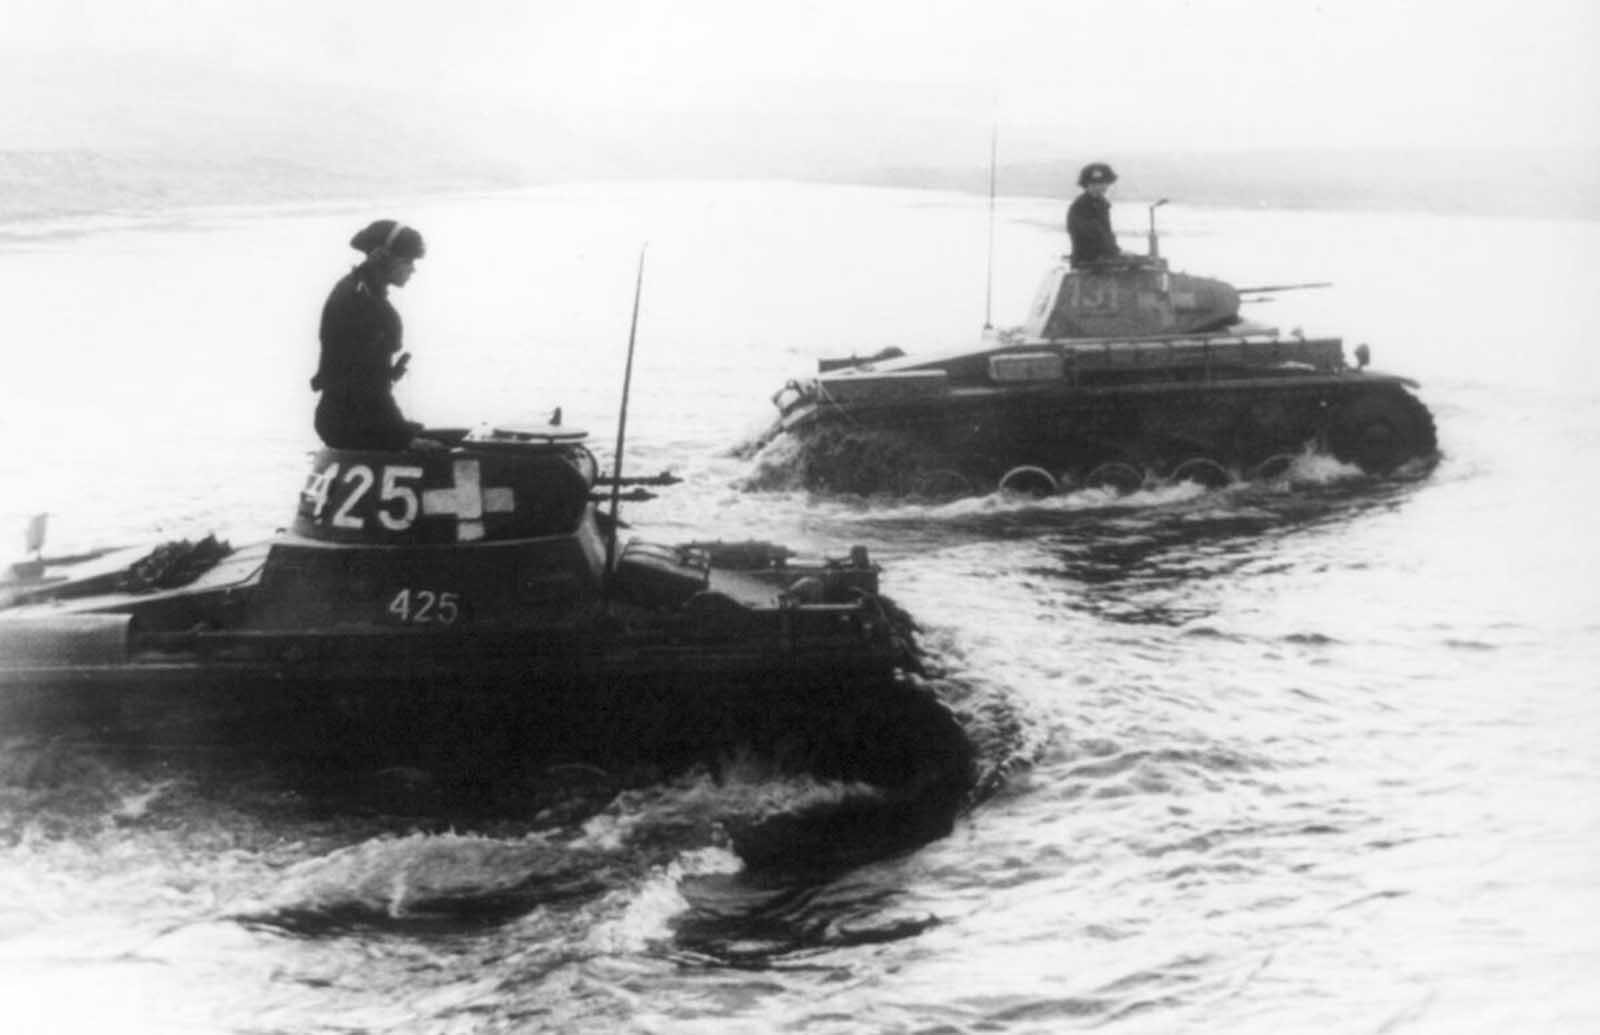 Two tanks of the SS-Leibstandarte Adolf Hitler Division cross the Bzura River during the German invasion of Poland in September of 1939. The Battle of Bzura, the largest of the entire campaign, lasted more than a week, ending with the German forces capturing most of western Poland.